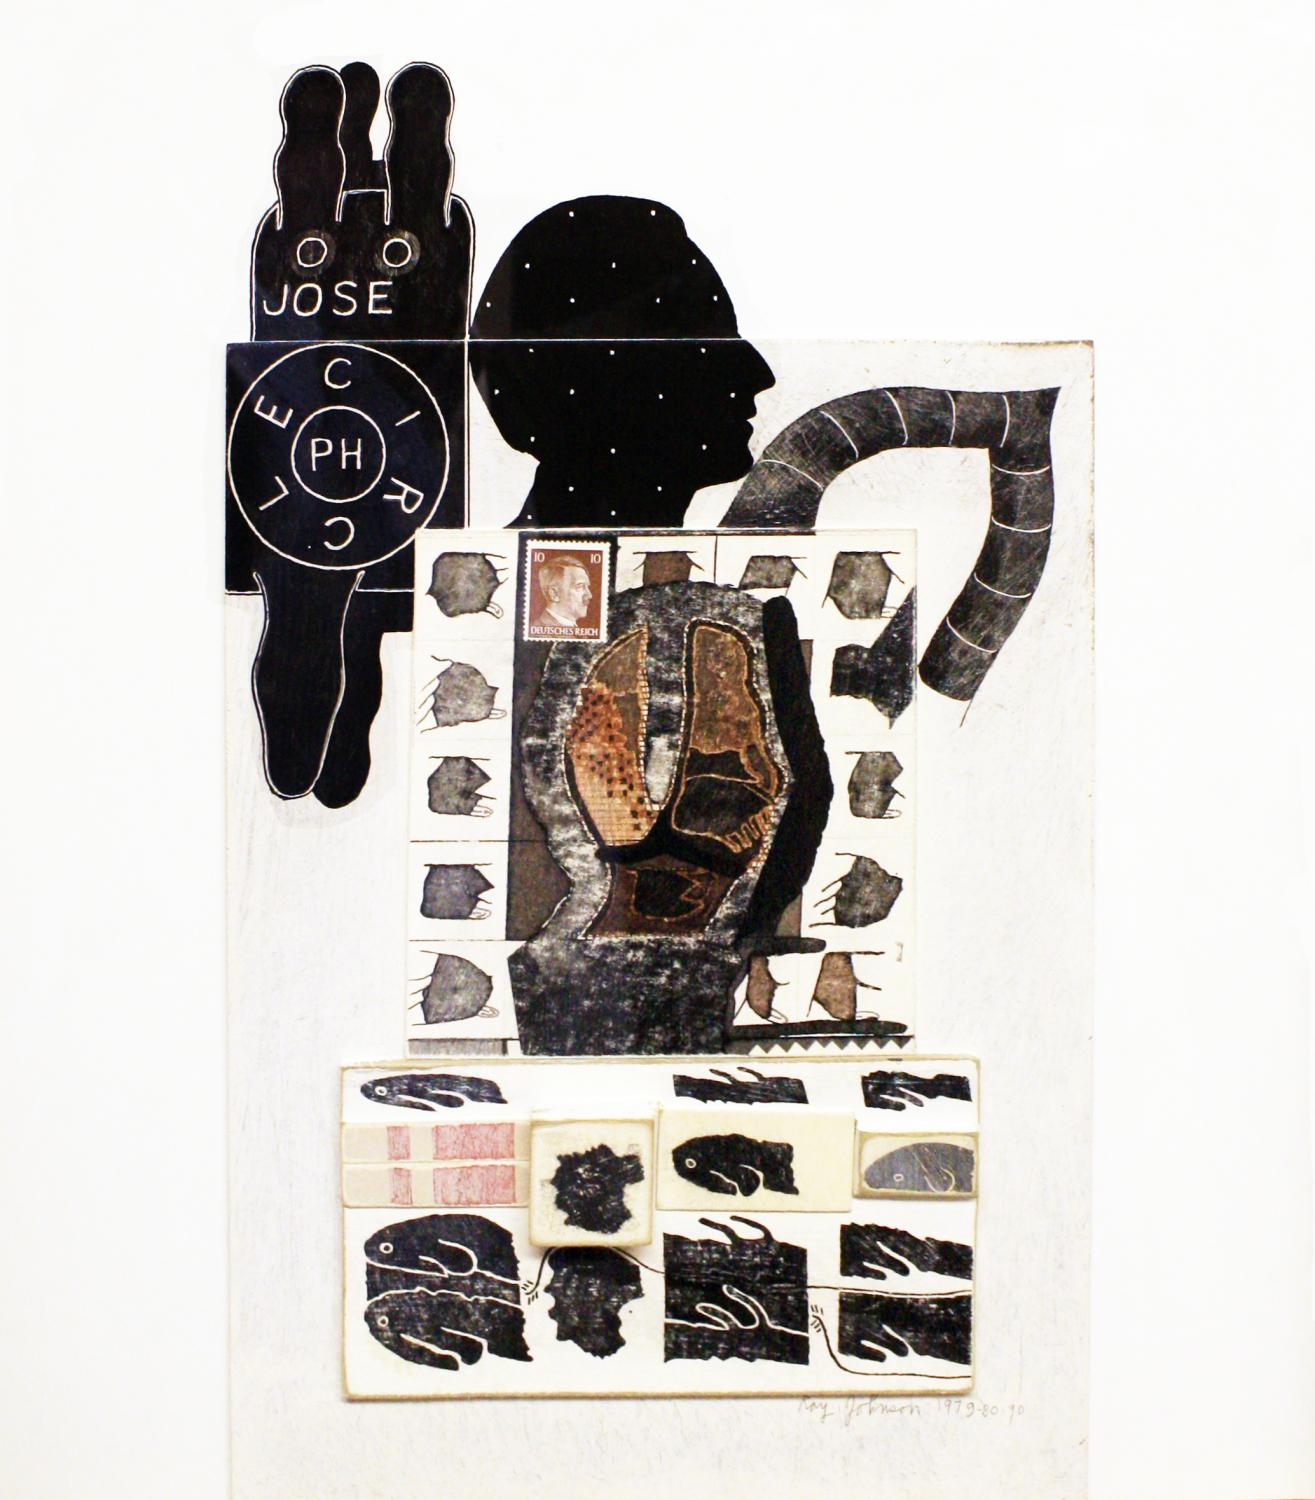 Ray Johnson, Untitled  (Joseph Circle), 1979–80–90. Collage on cardboard panel. Courtesy Richard L. Feigen & Co., New York. © Ray Johnson Estate.